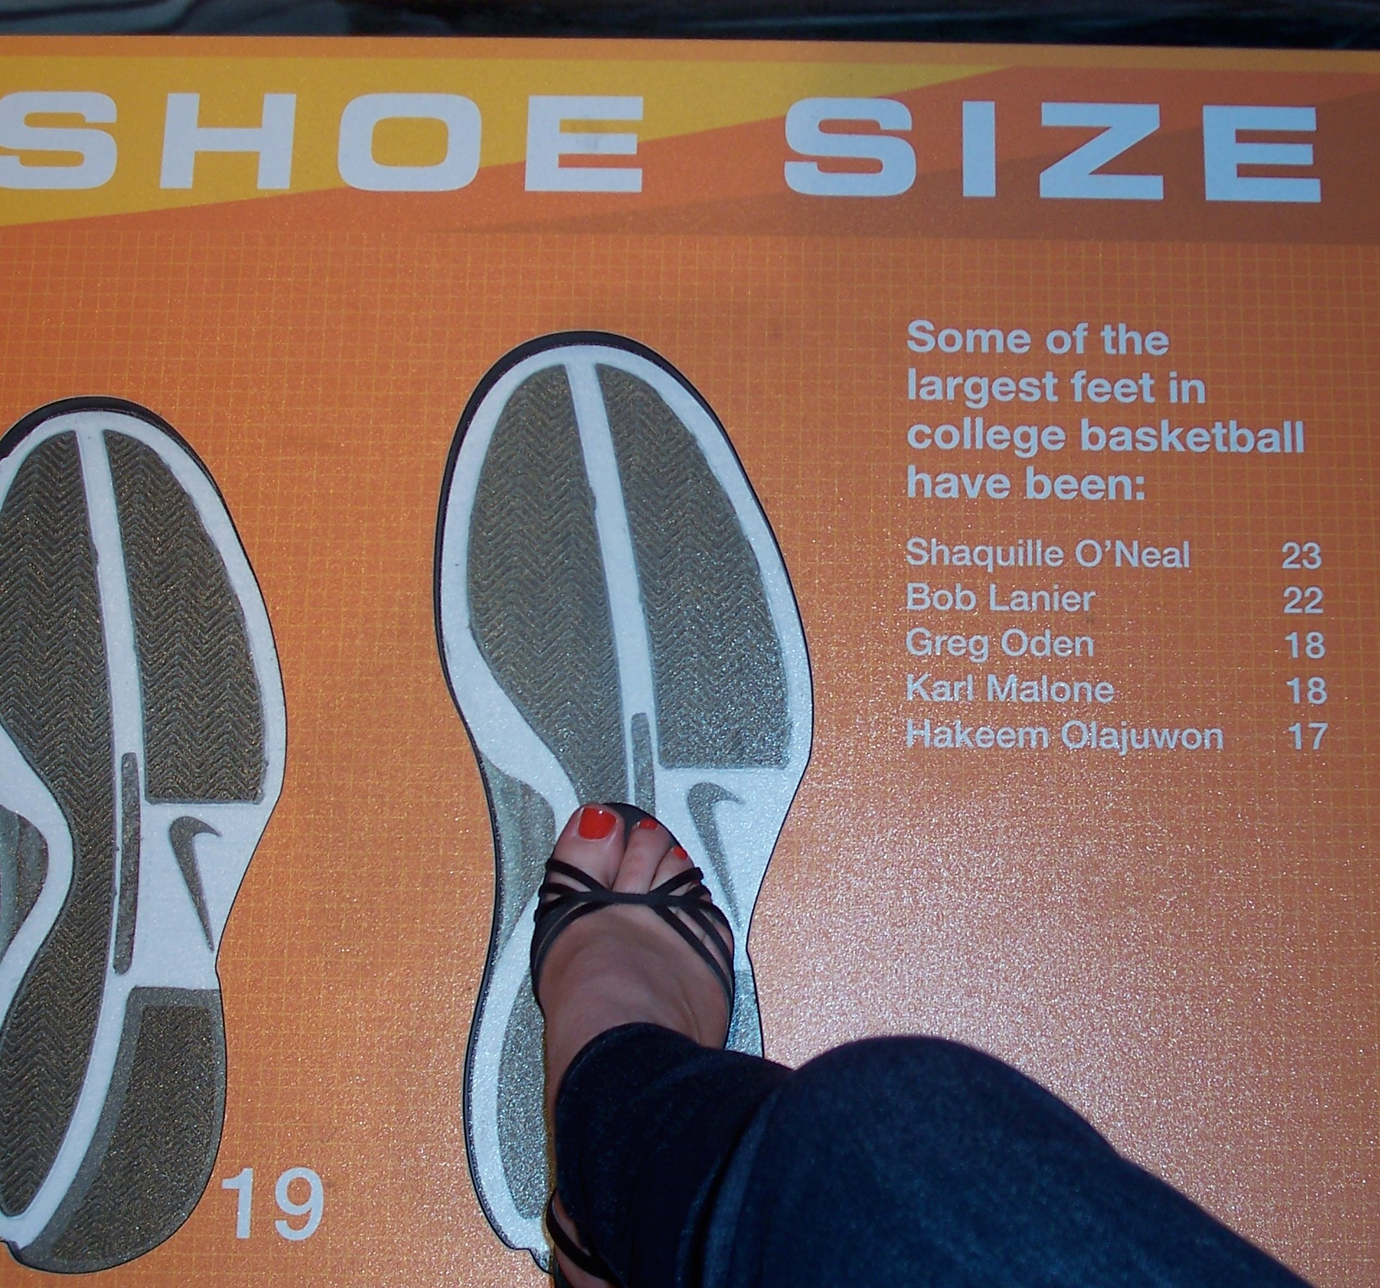 Size 23?? That would really suck the fun out of shoe shopping